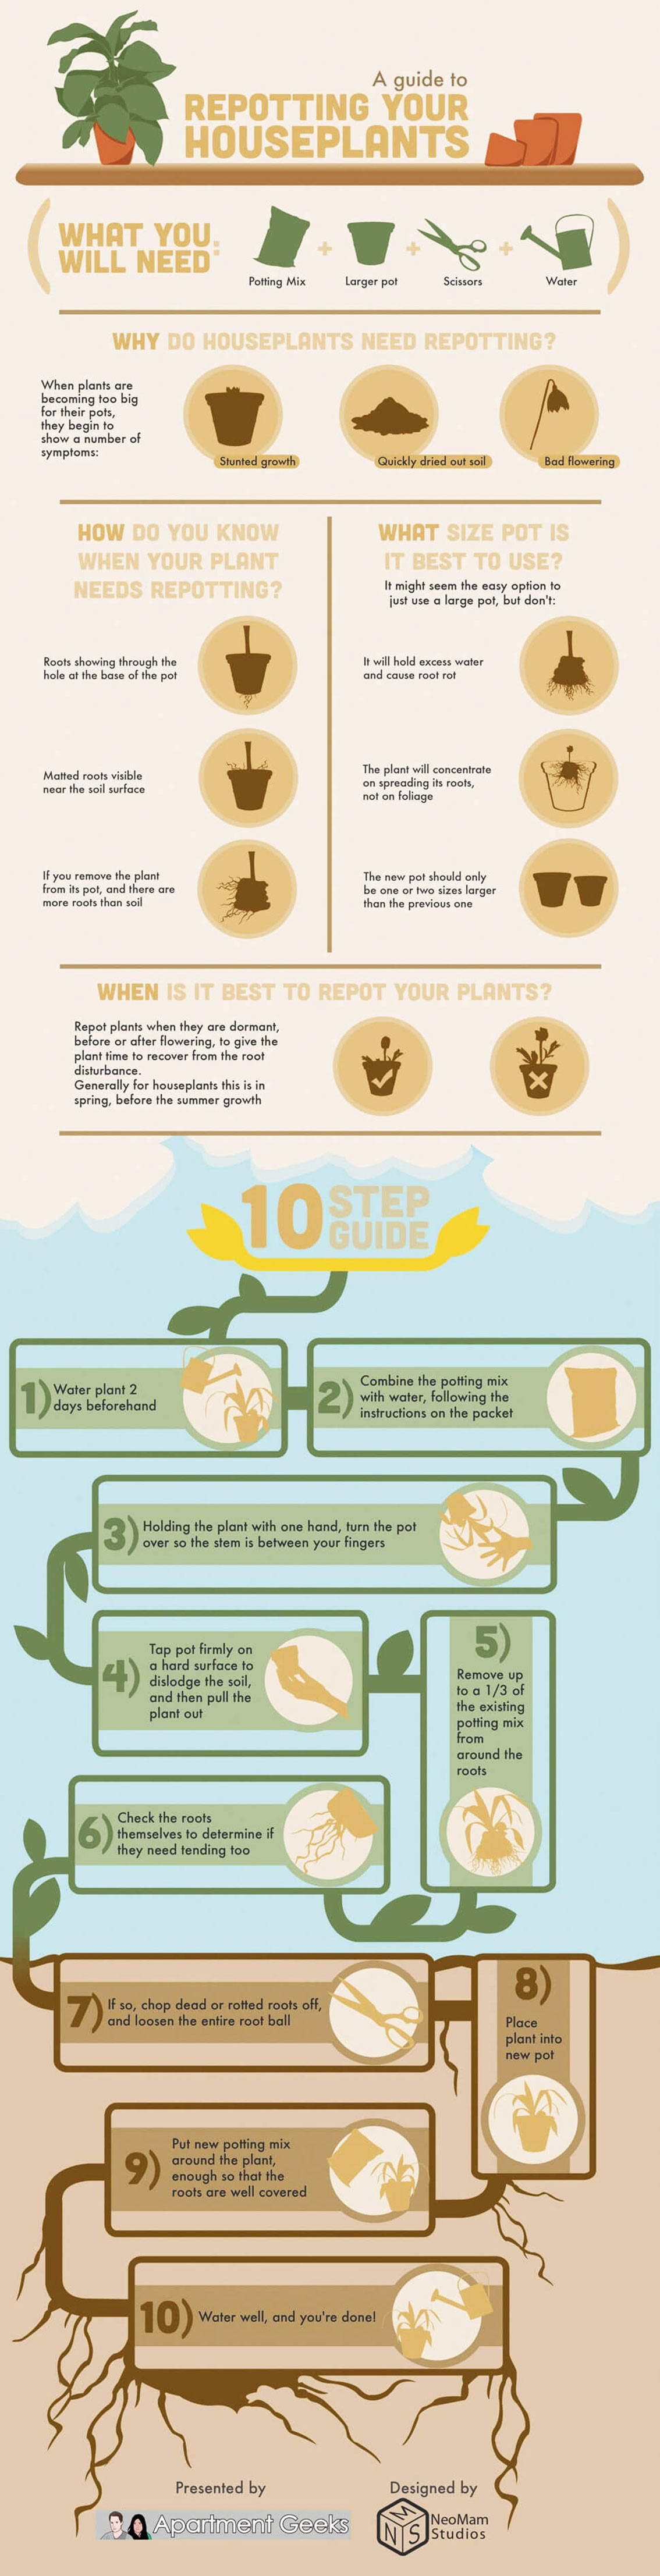 Guide to Repotting Indoor Plants Infographic